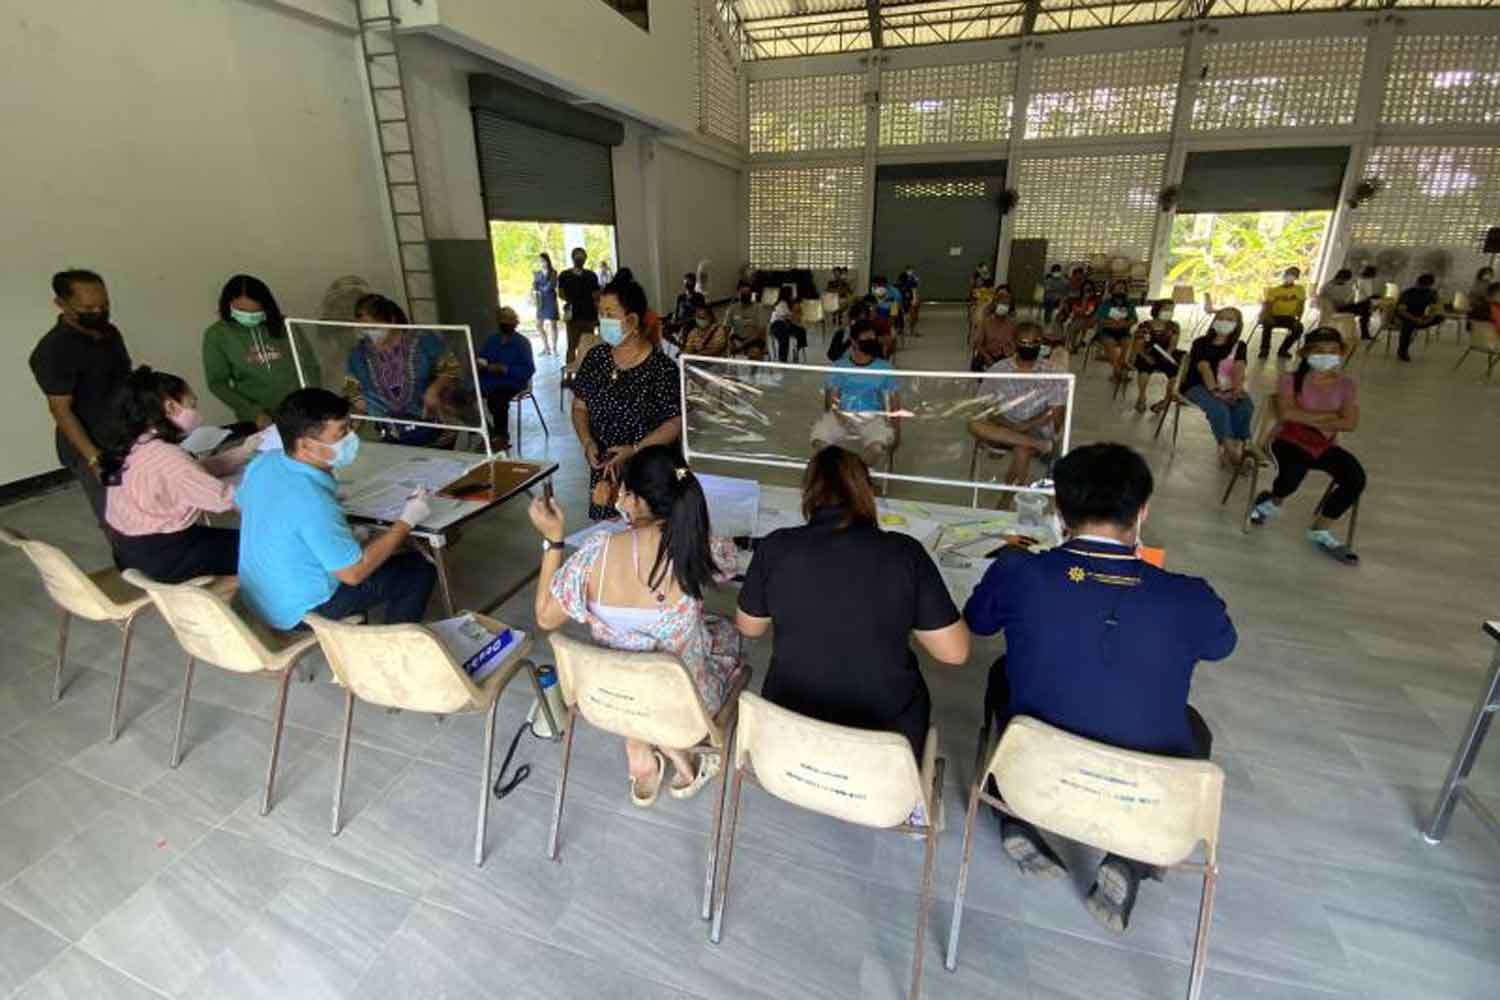 People are waiting for travel permits in Trat province on Thursday. (Photo: Jakkrit Waewklaihong)